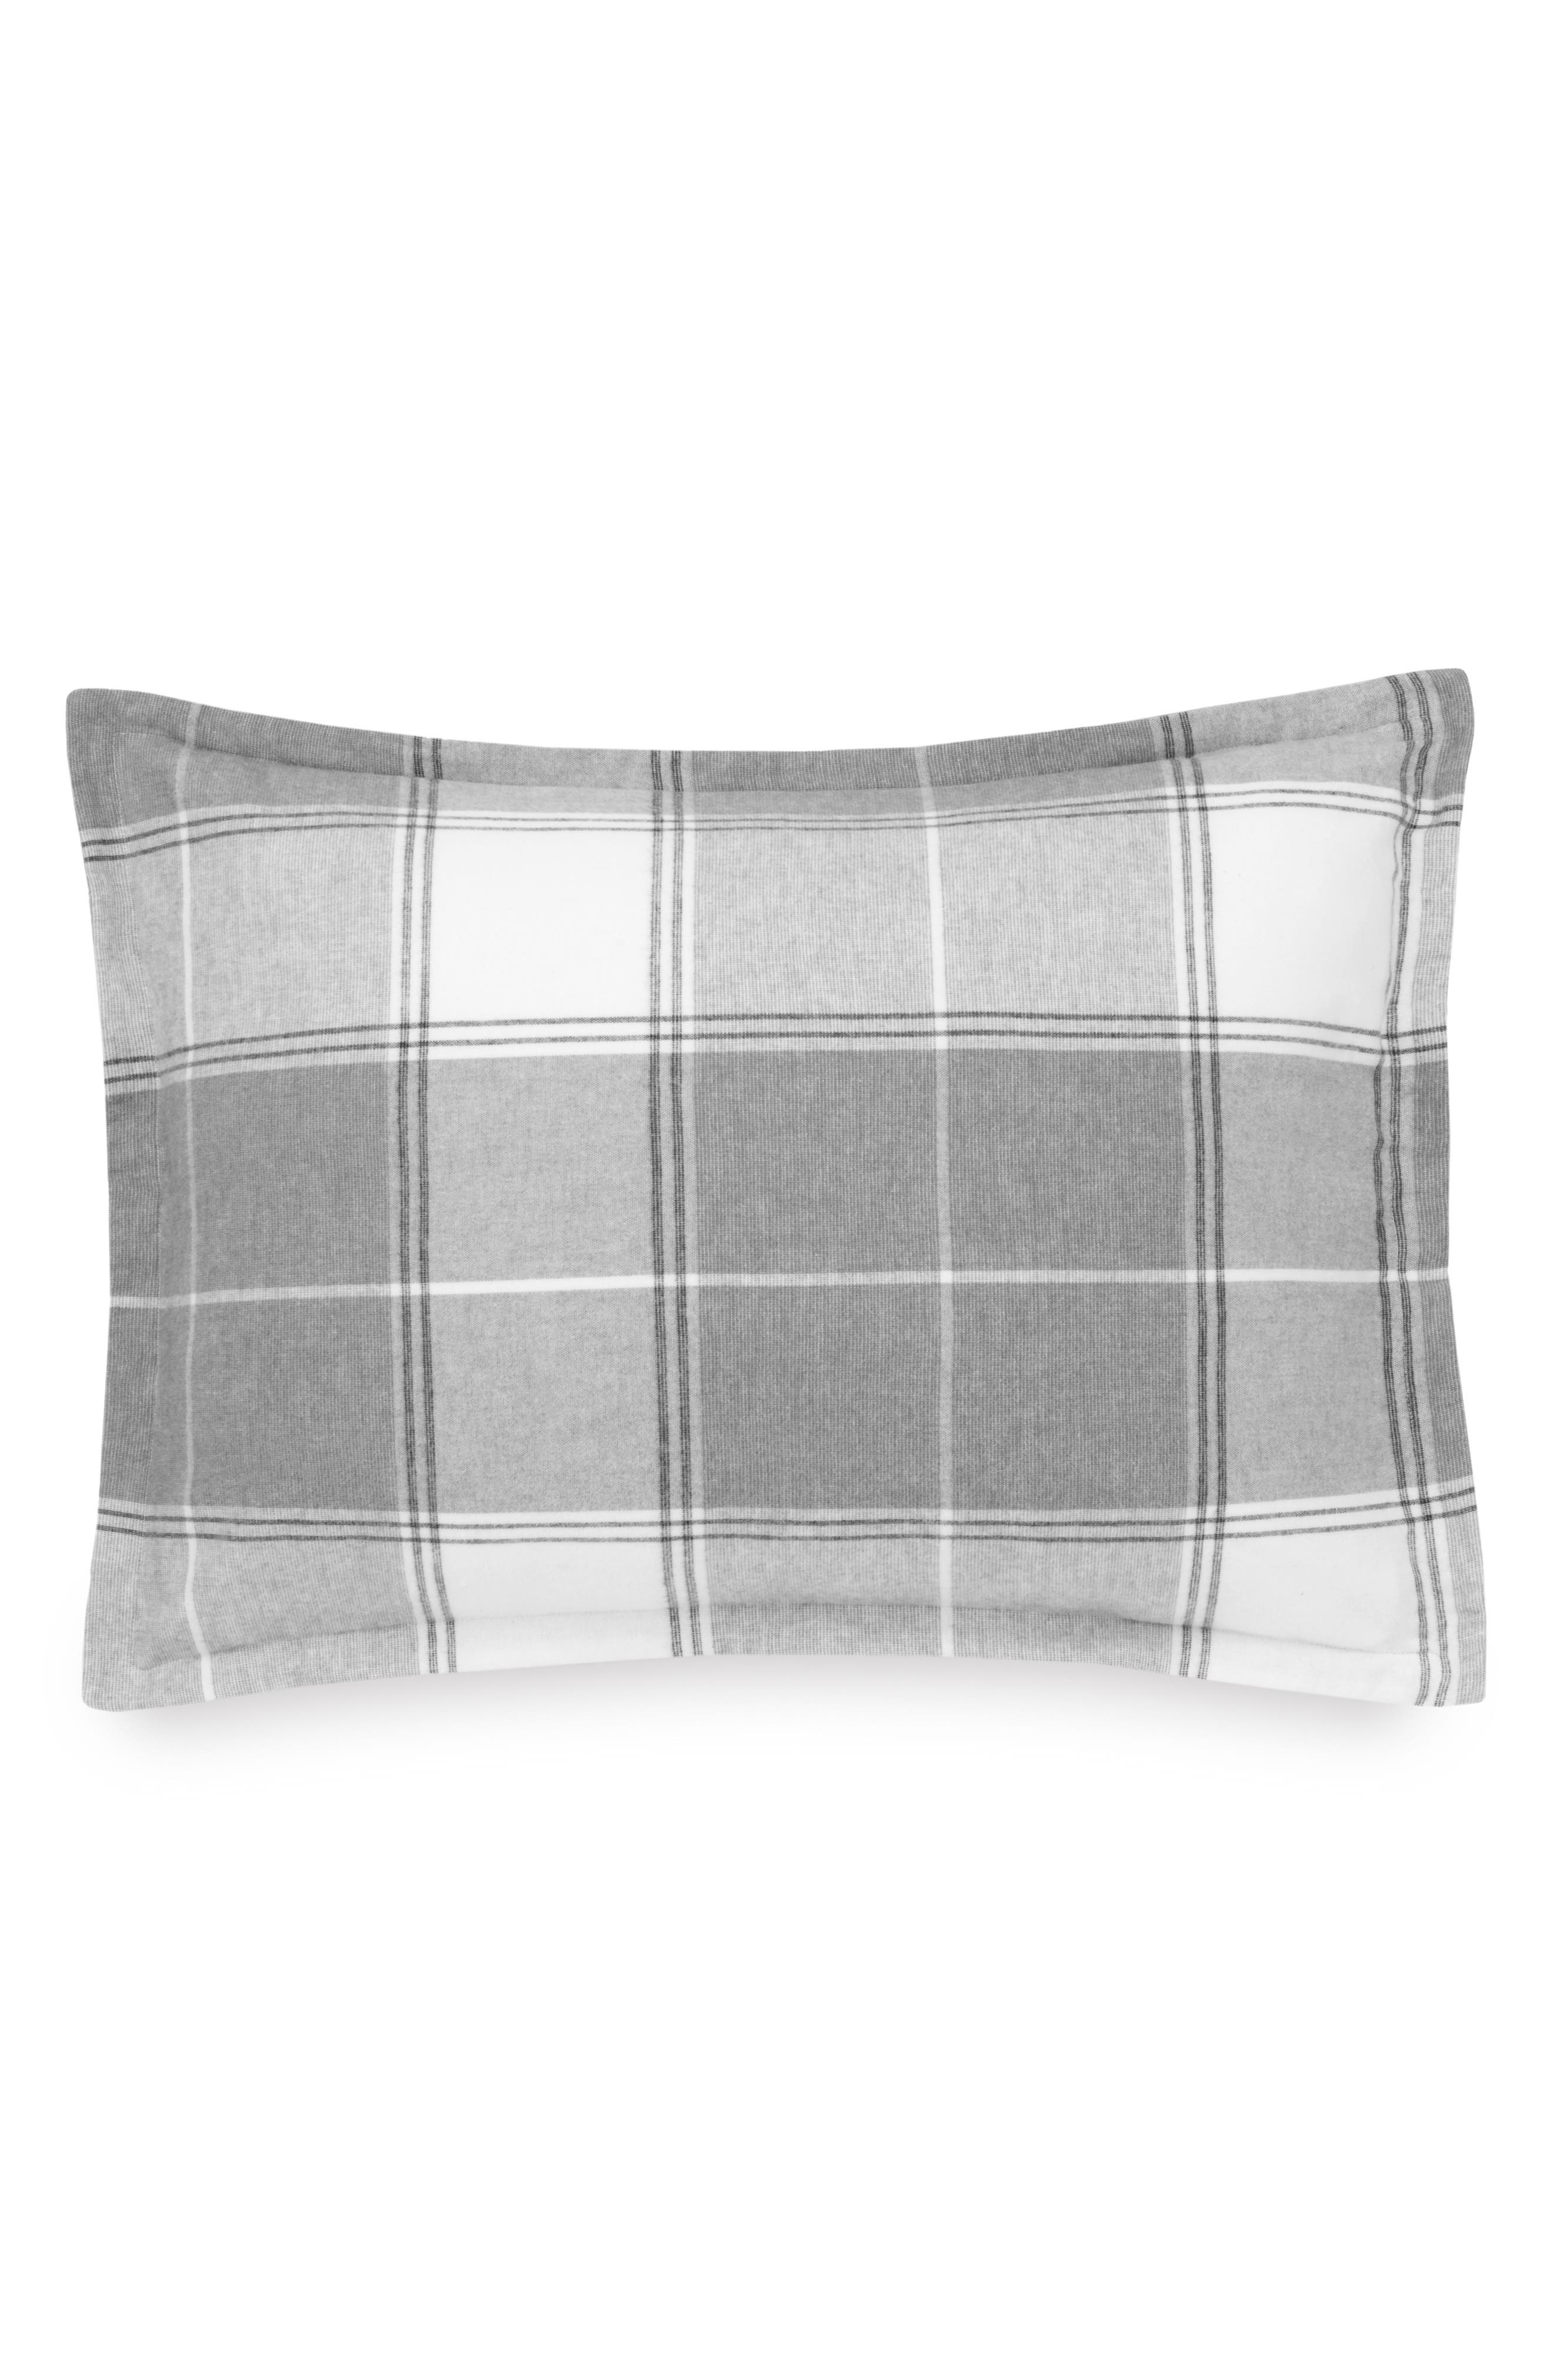 Flannel Luxe Sham,                         Main,                         color, 021